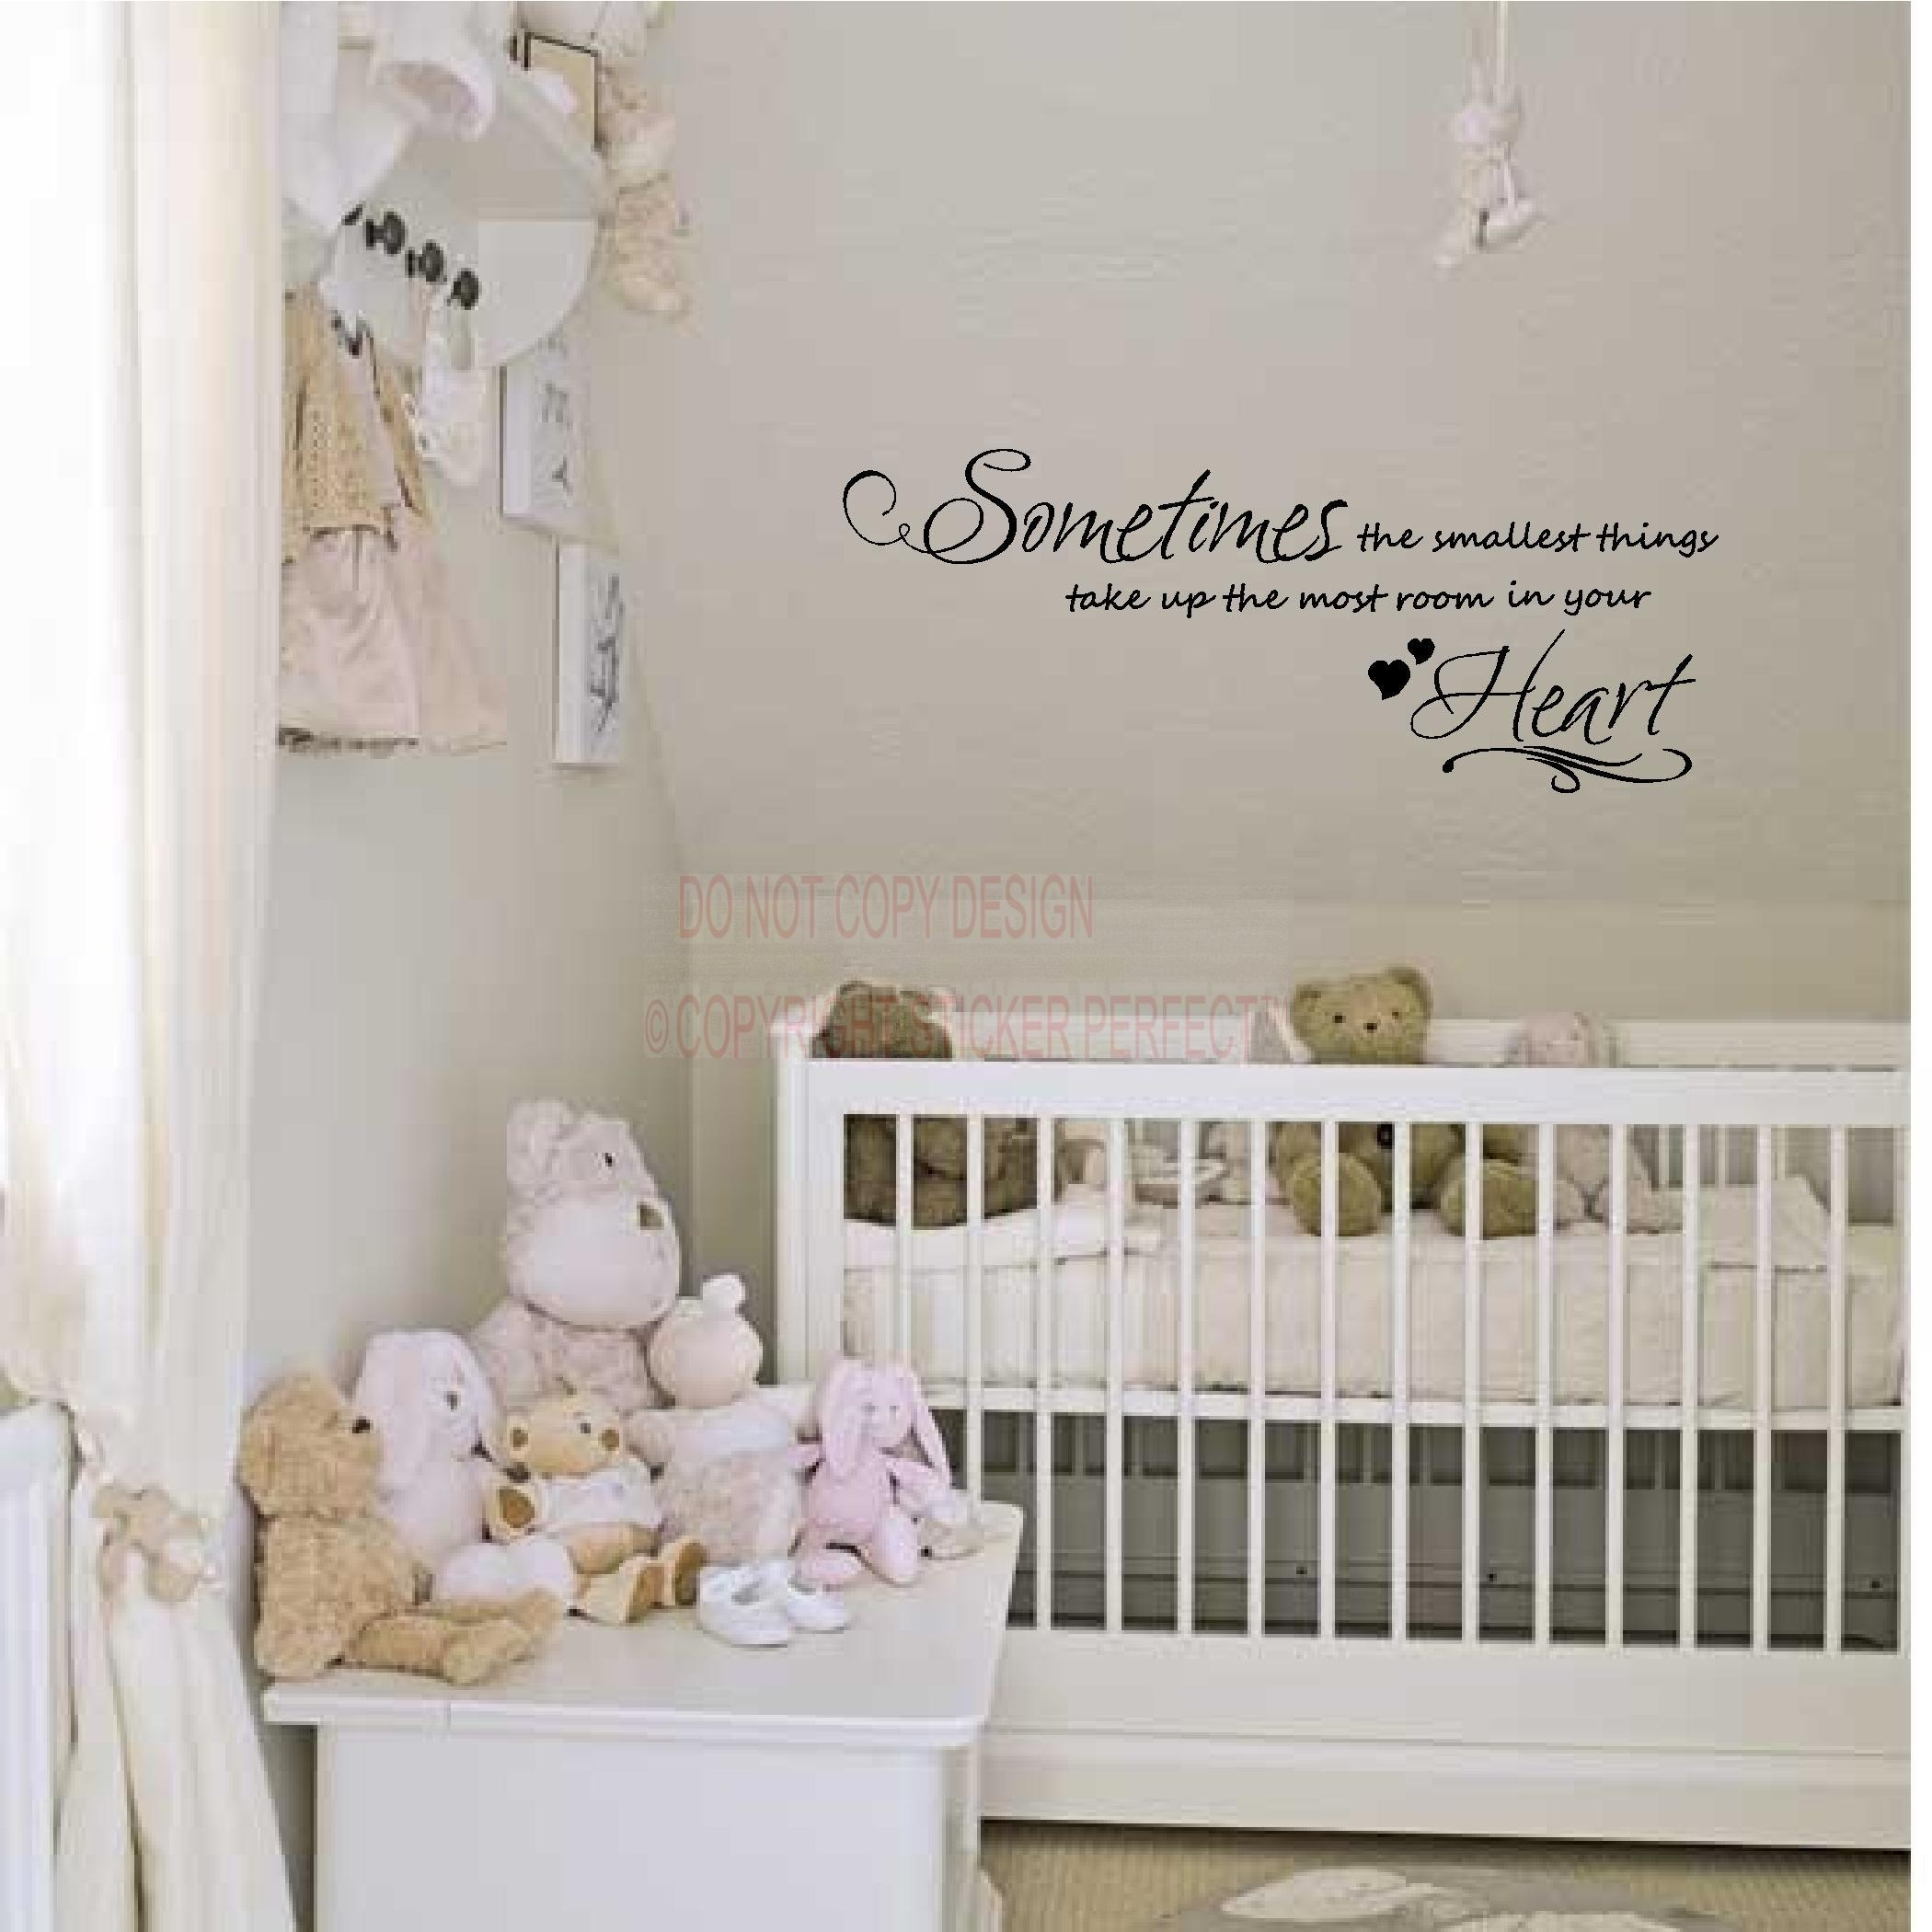 3 Sometimes The Smallest Things Take Up The Most Room In Your With Winnie The Pooh Wall Art For Nursery (View 6 of 20)